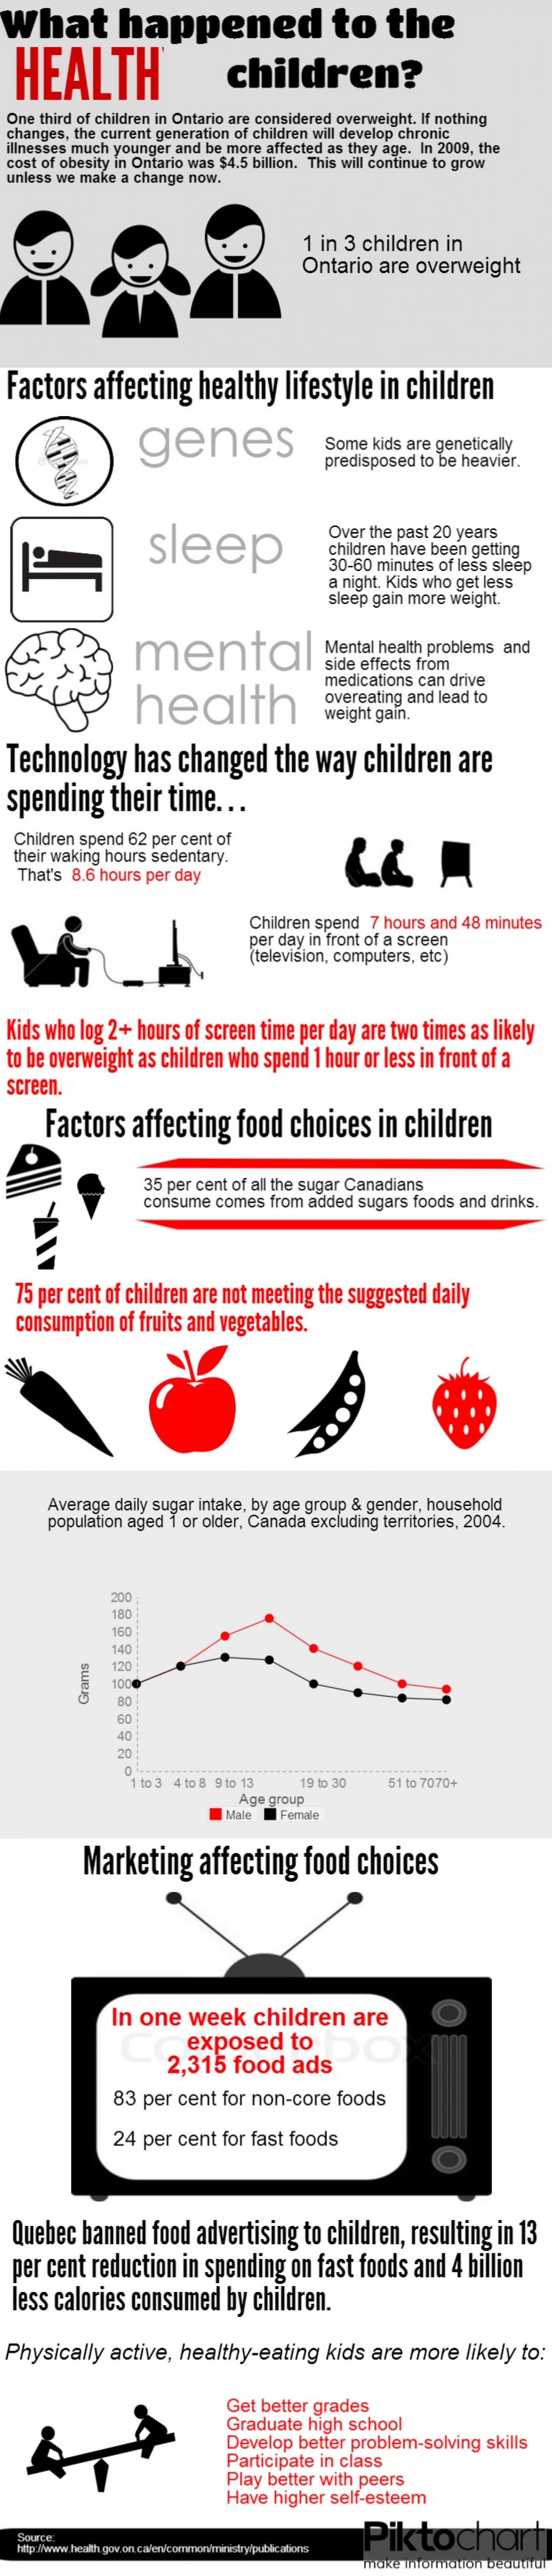 Healthy Children in Ontario/Canada Infographic